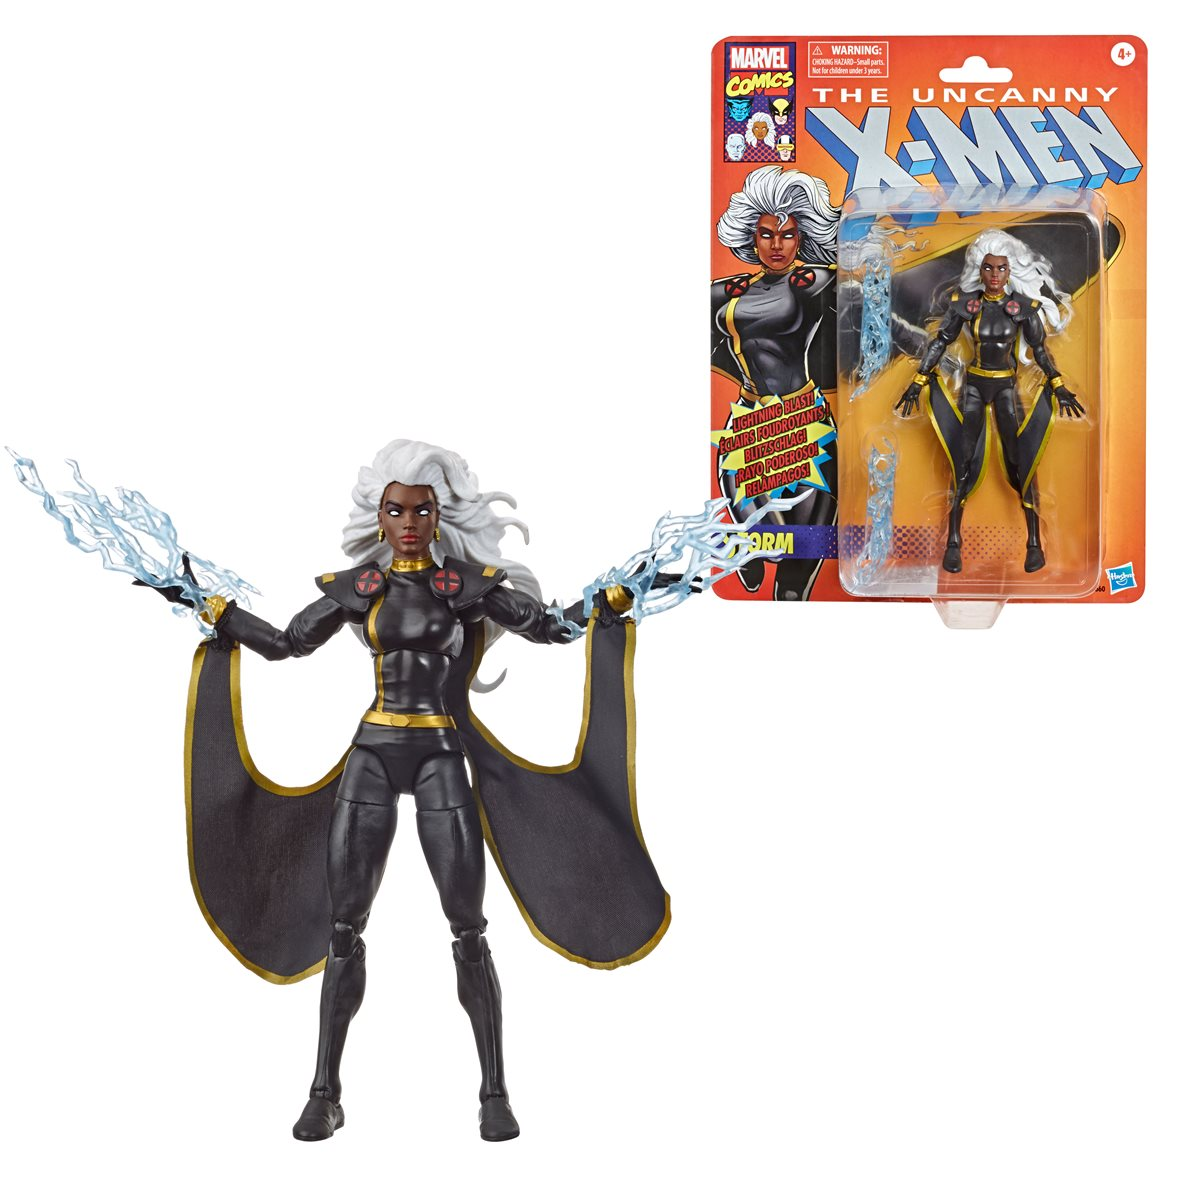 New Marvel Legends Include Black Widow Movie Black Costume